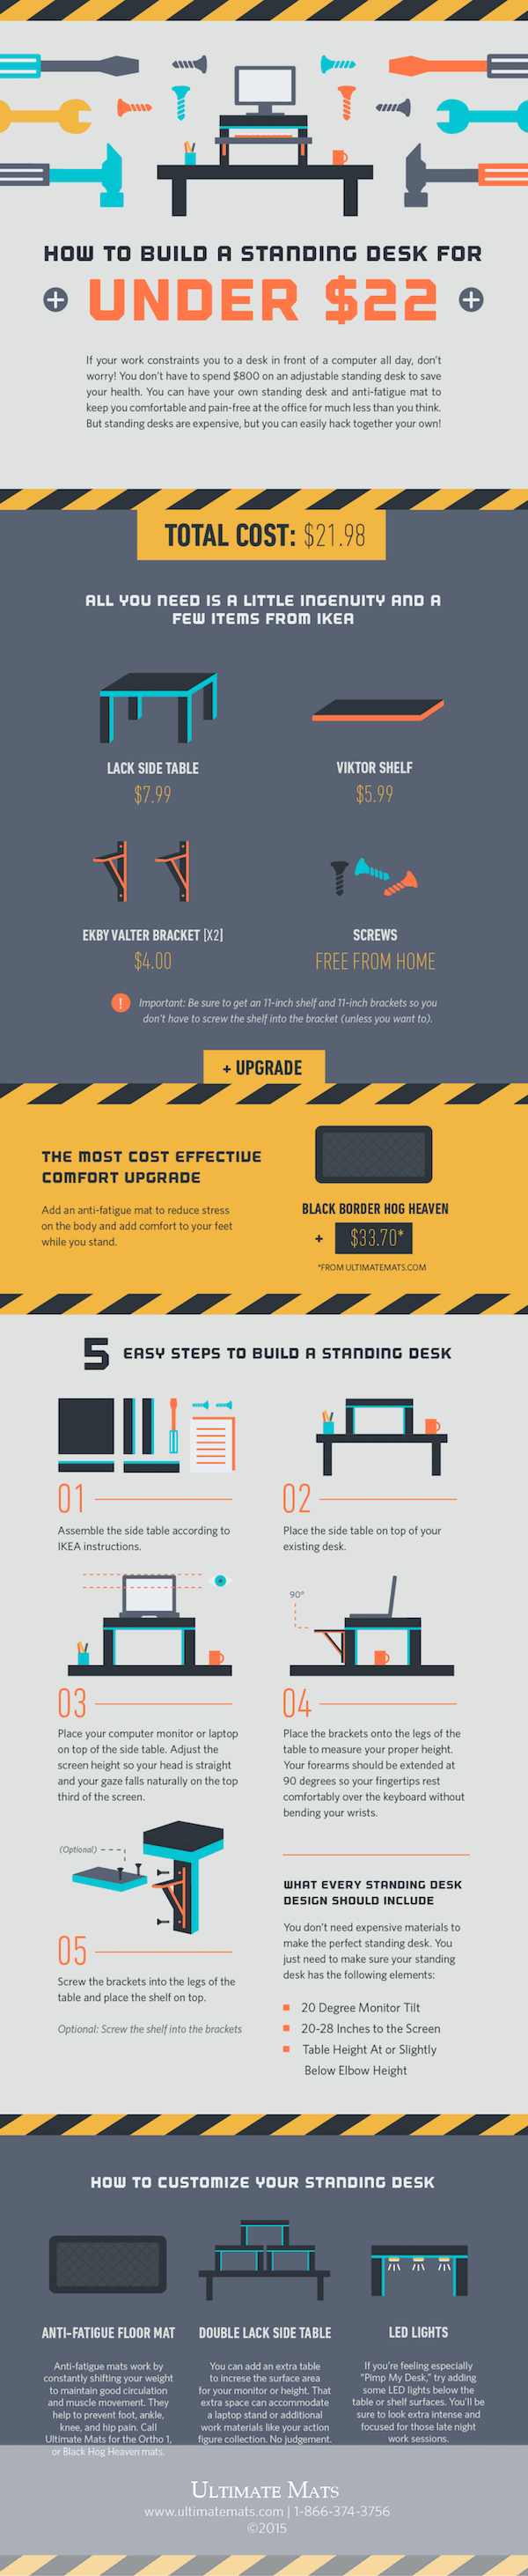 How To Build A Standing Desk For Under 22 Infographic